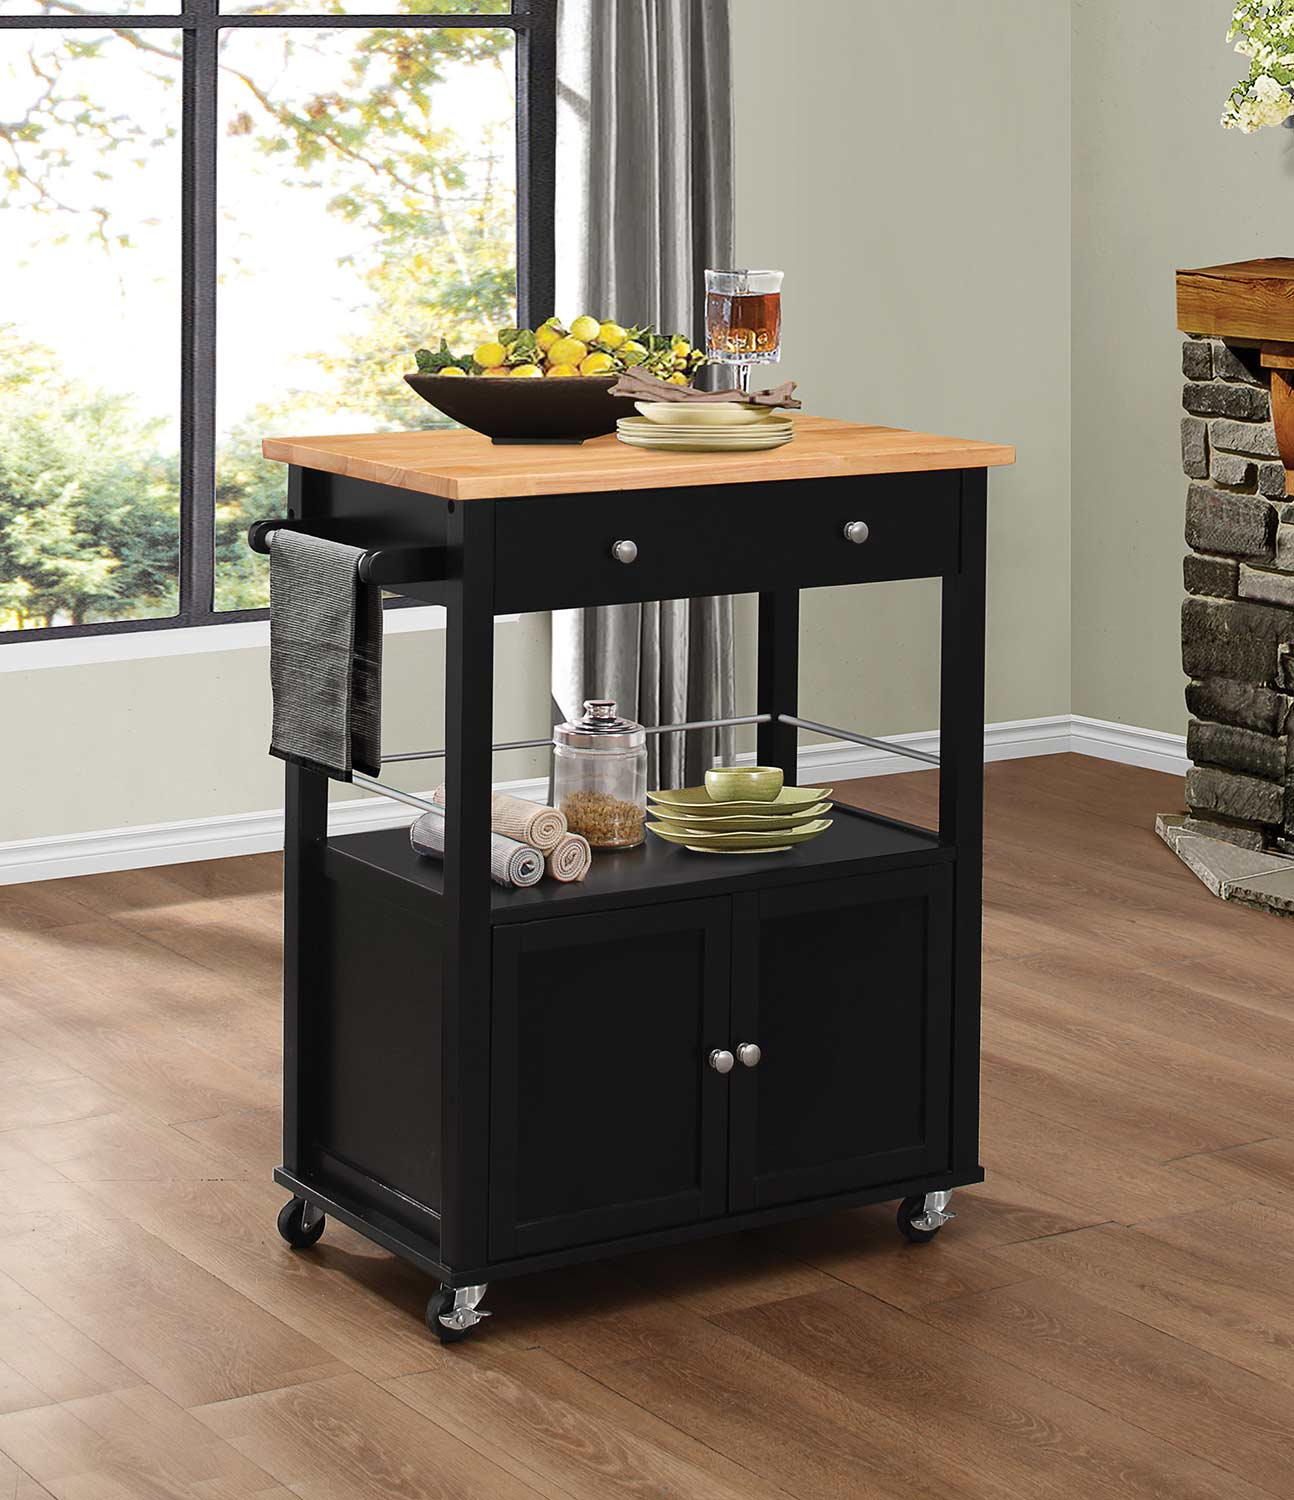 Homelegance Denham Kitchen Cart with Casters